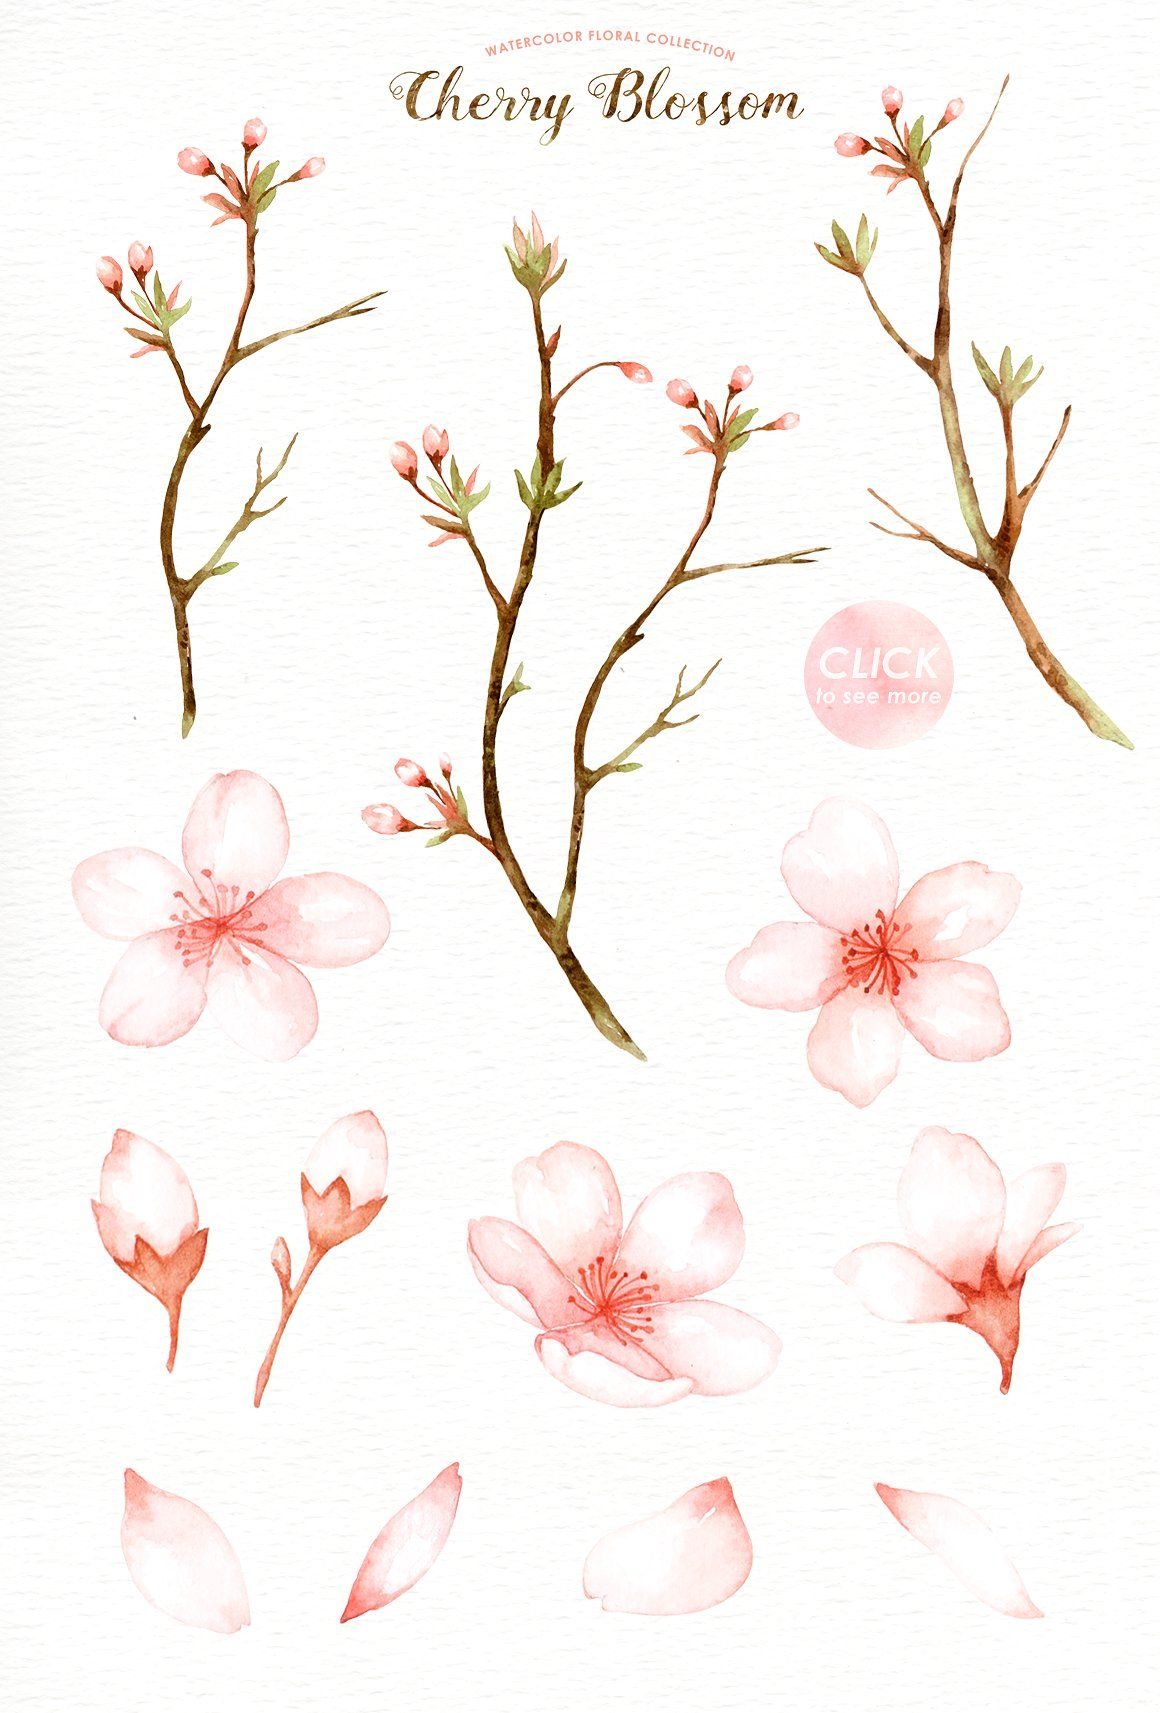 Cherry Blossom Watercolor Clip Art Cherry Blossom Watercolor Cherry Blossom Drawing Cherry Blossom Art